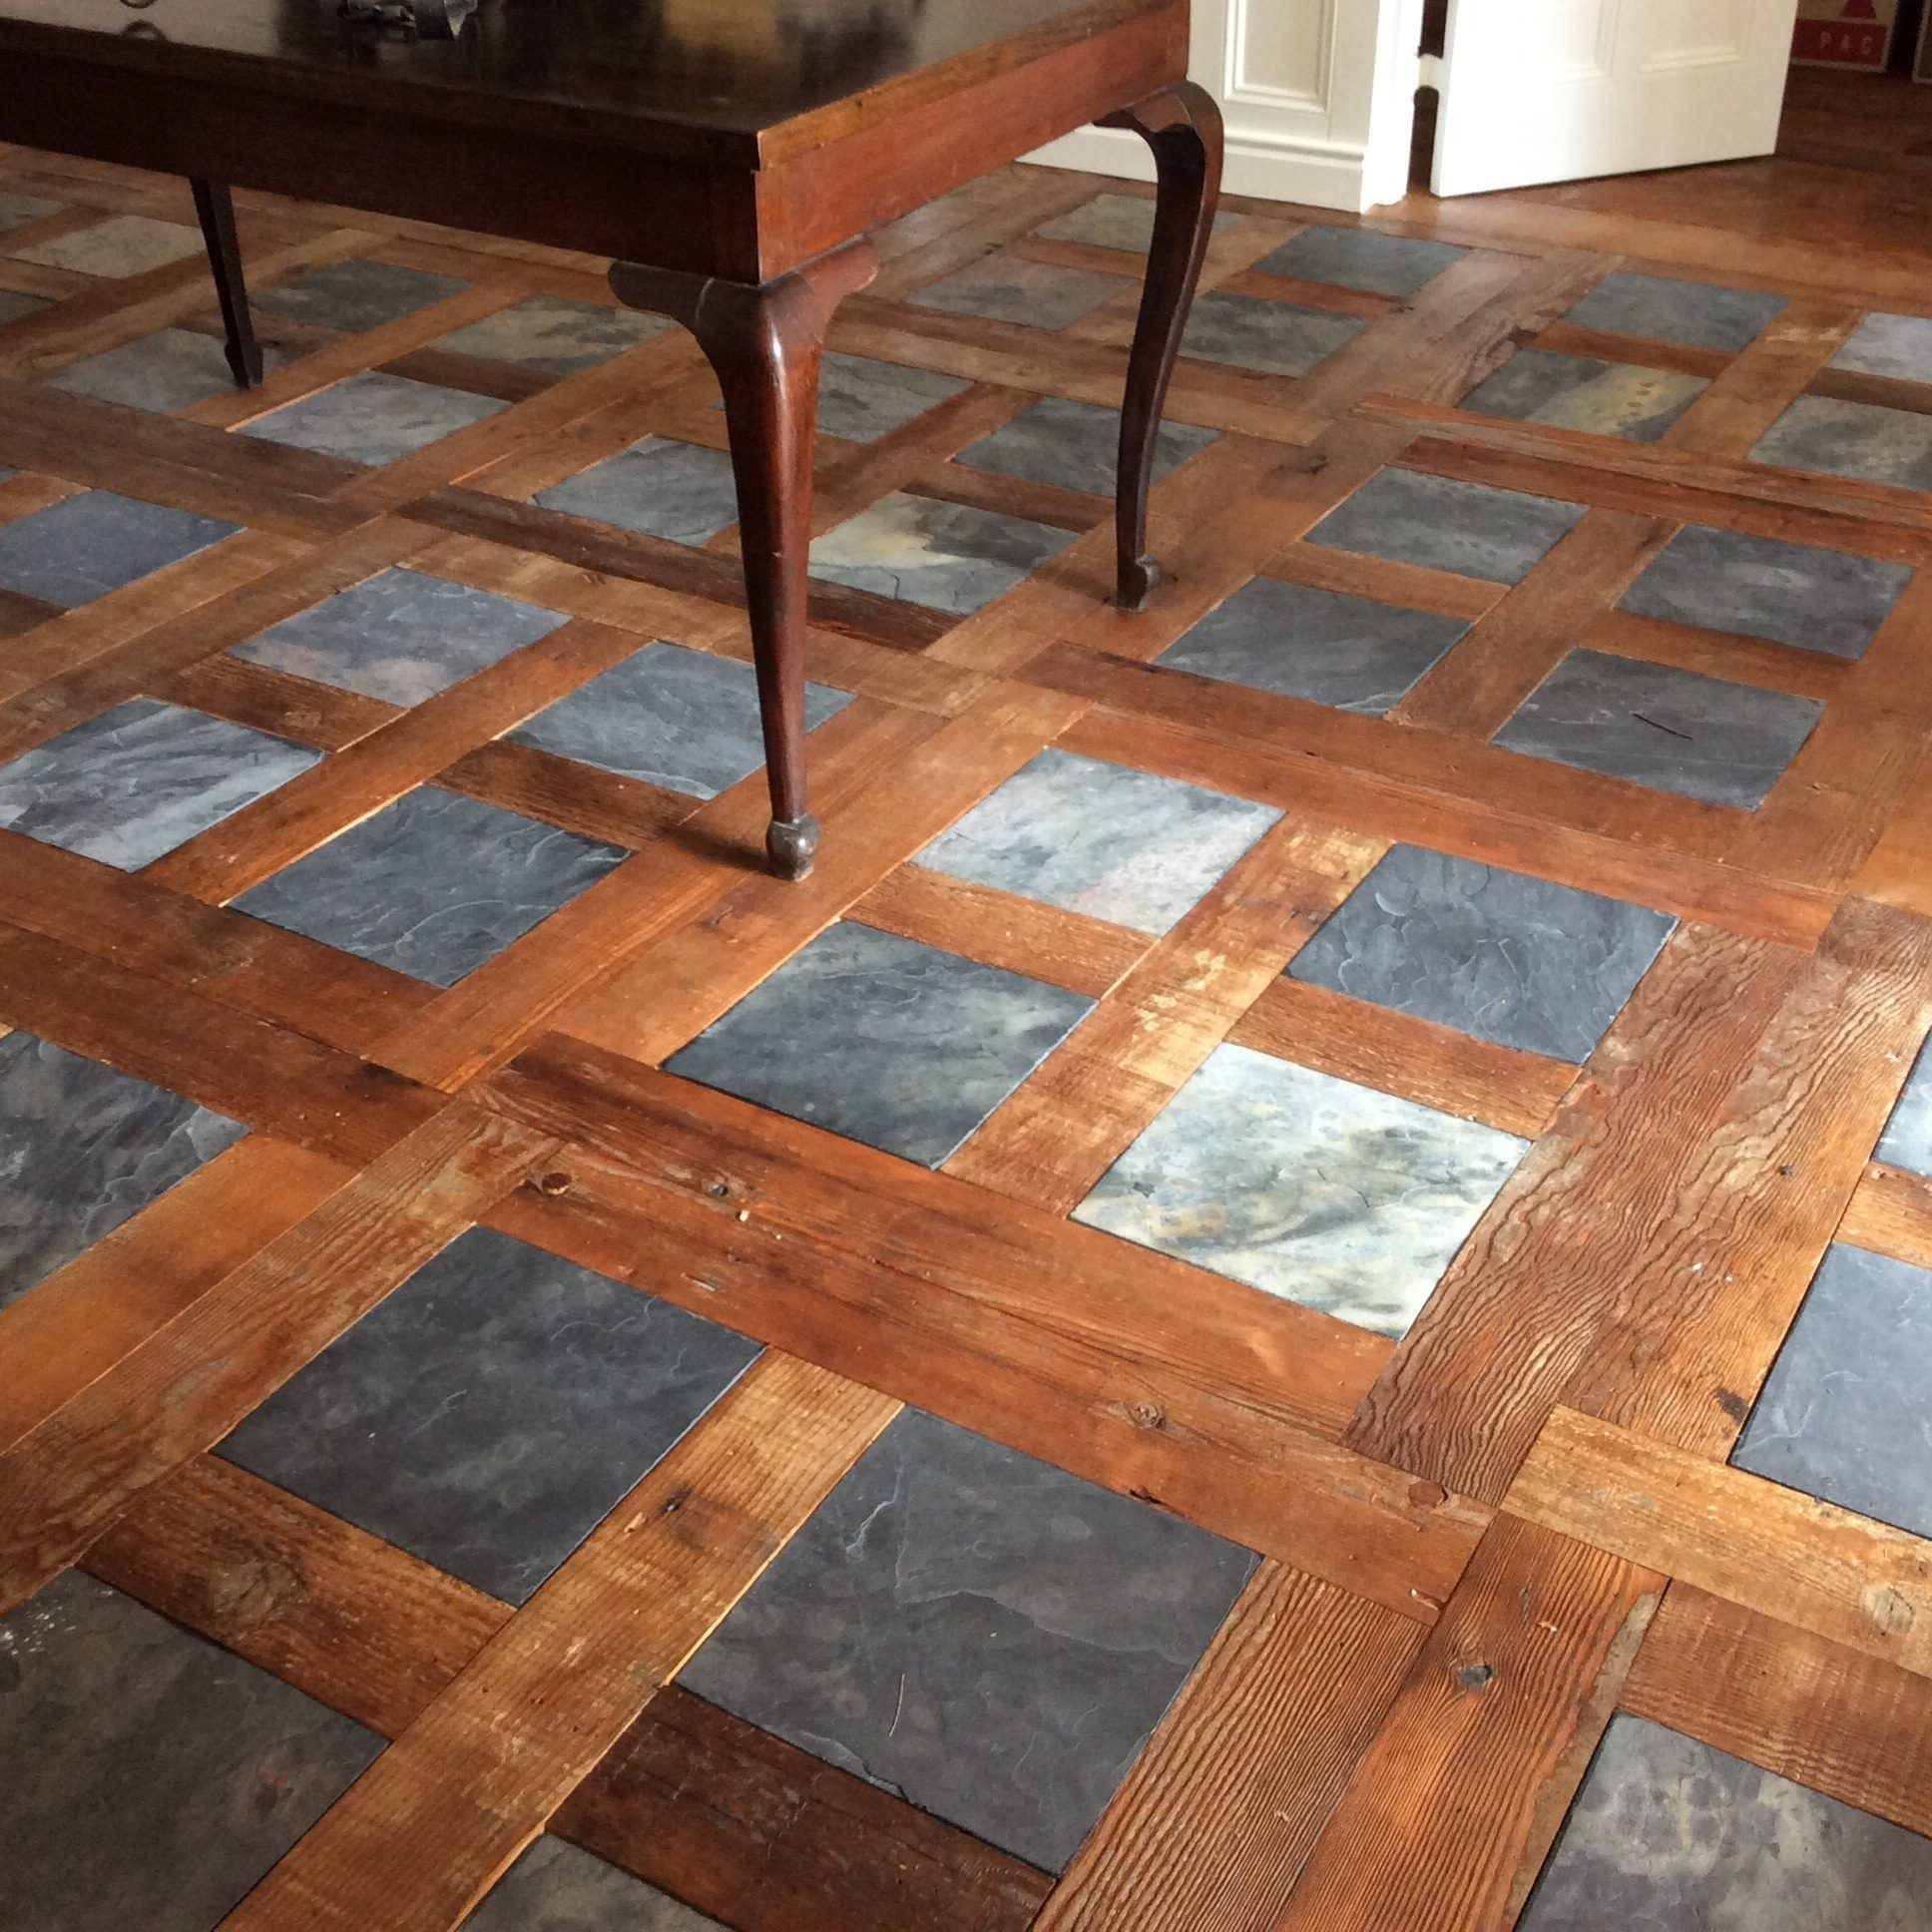 Heritage Building Centre supplied and installed wood and slate floor for client